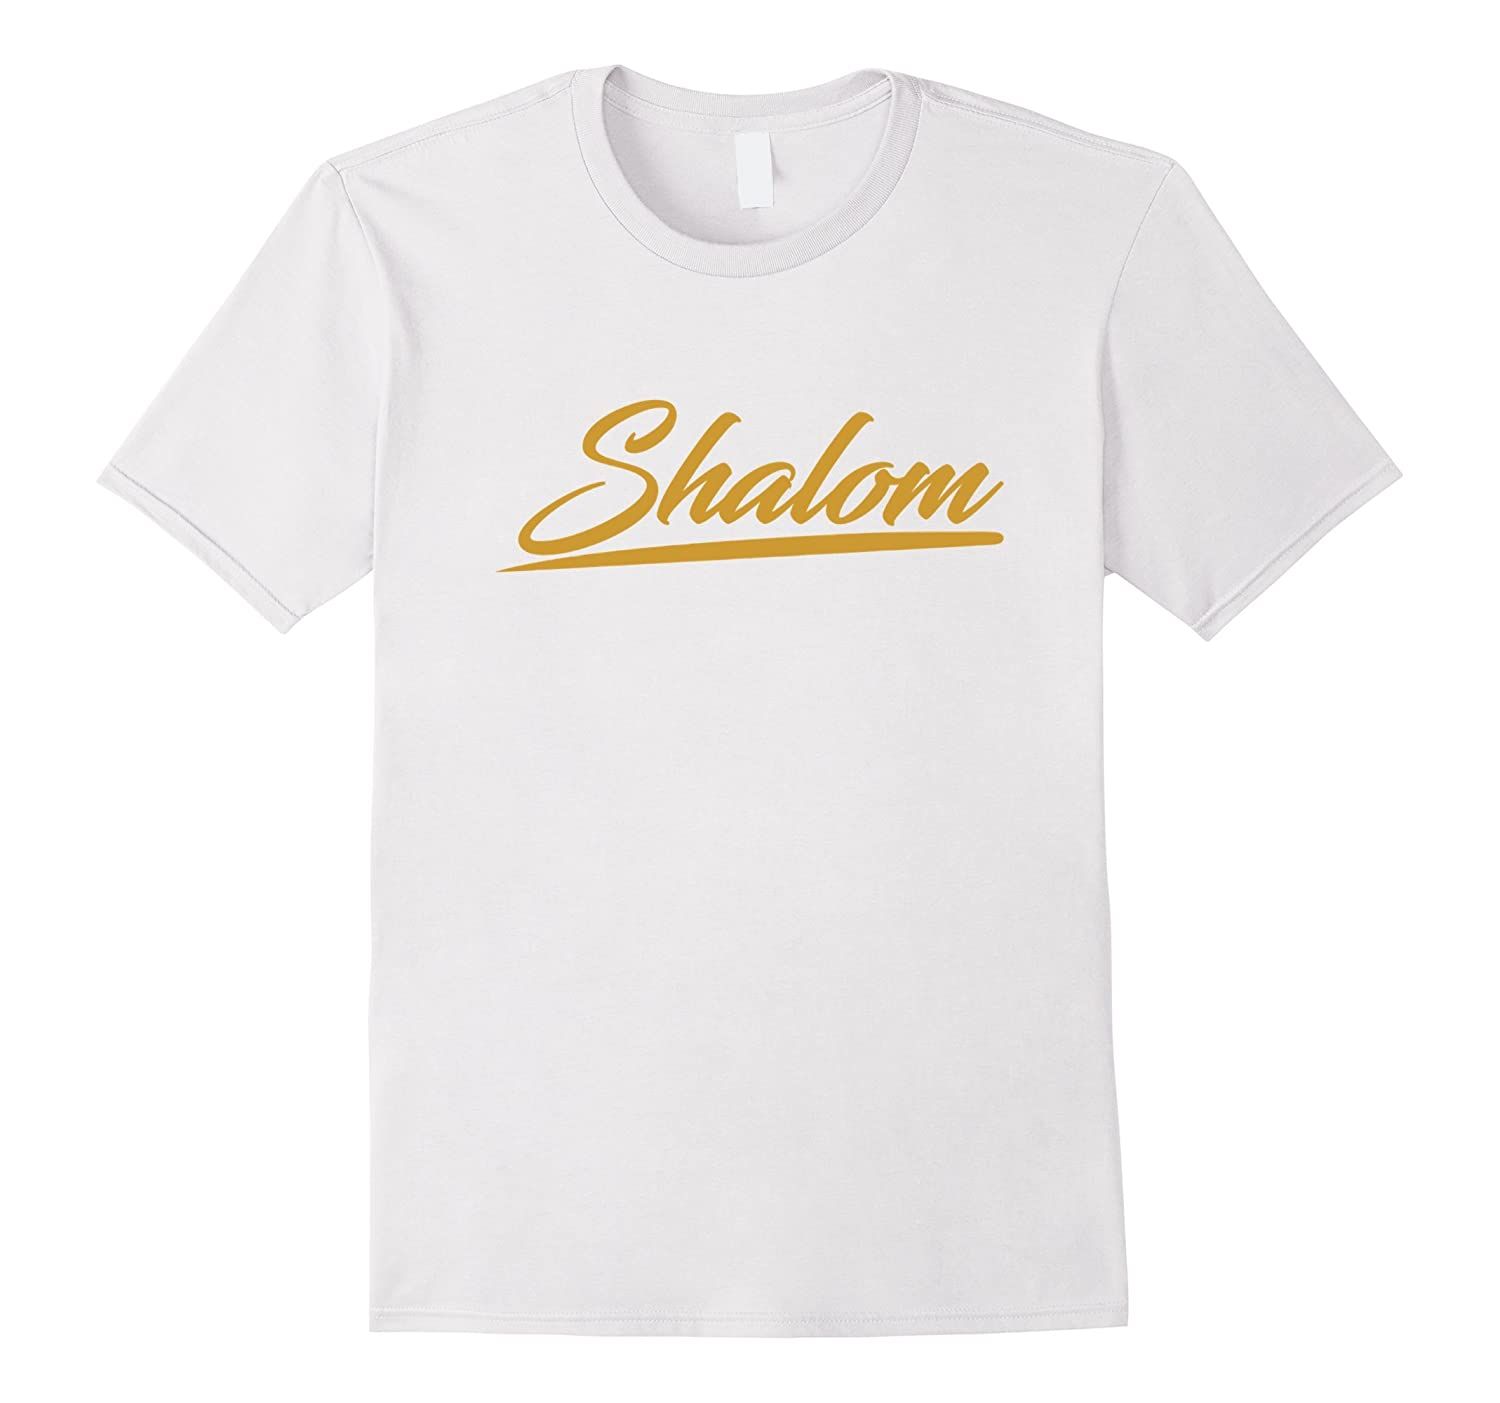 Gold Shalom T-shirt Hebrew Israelites Messianic Yahshua-Vaci